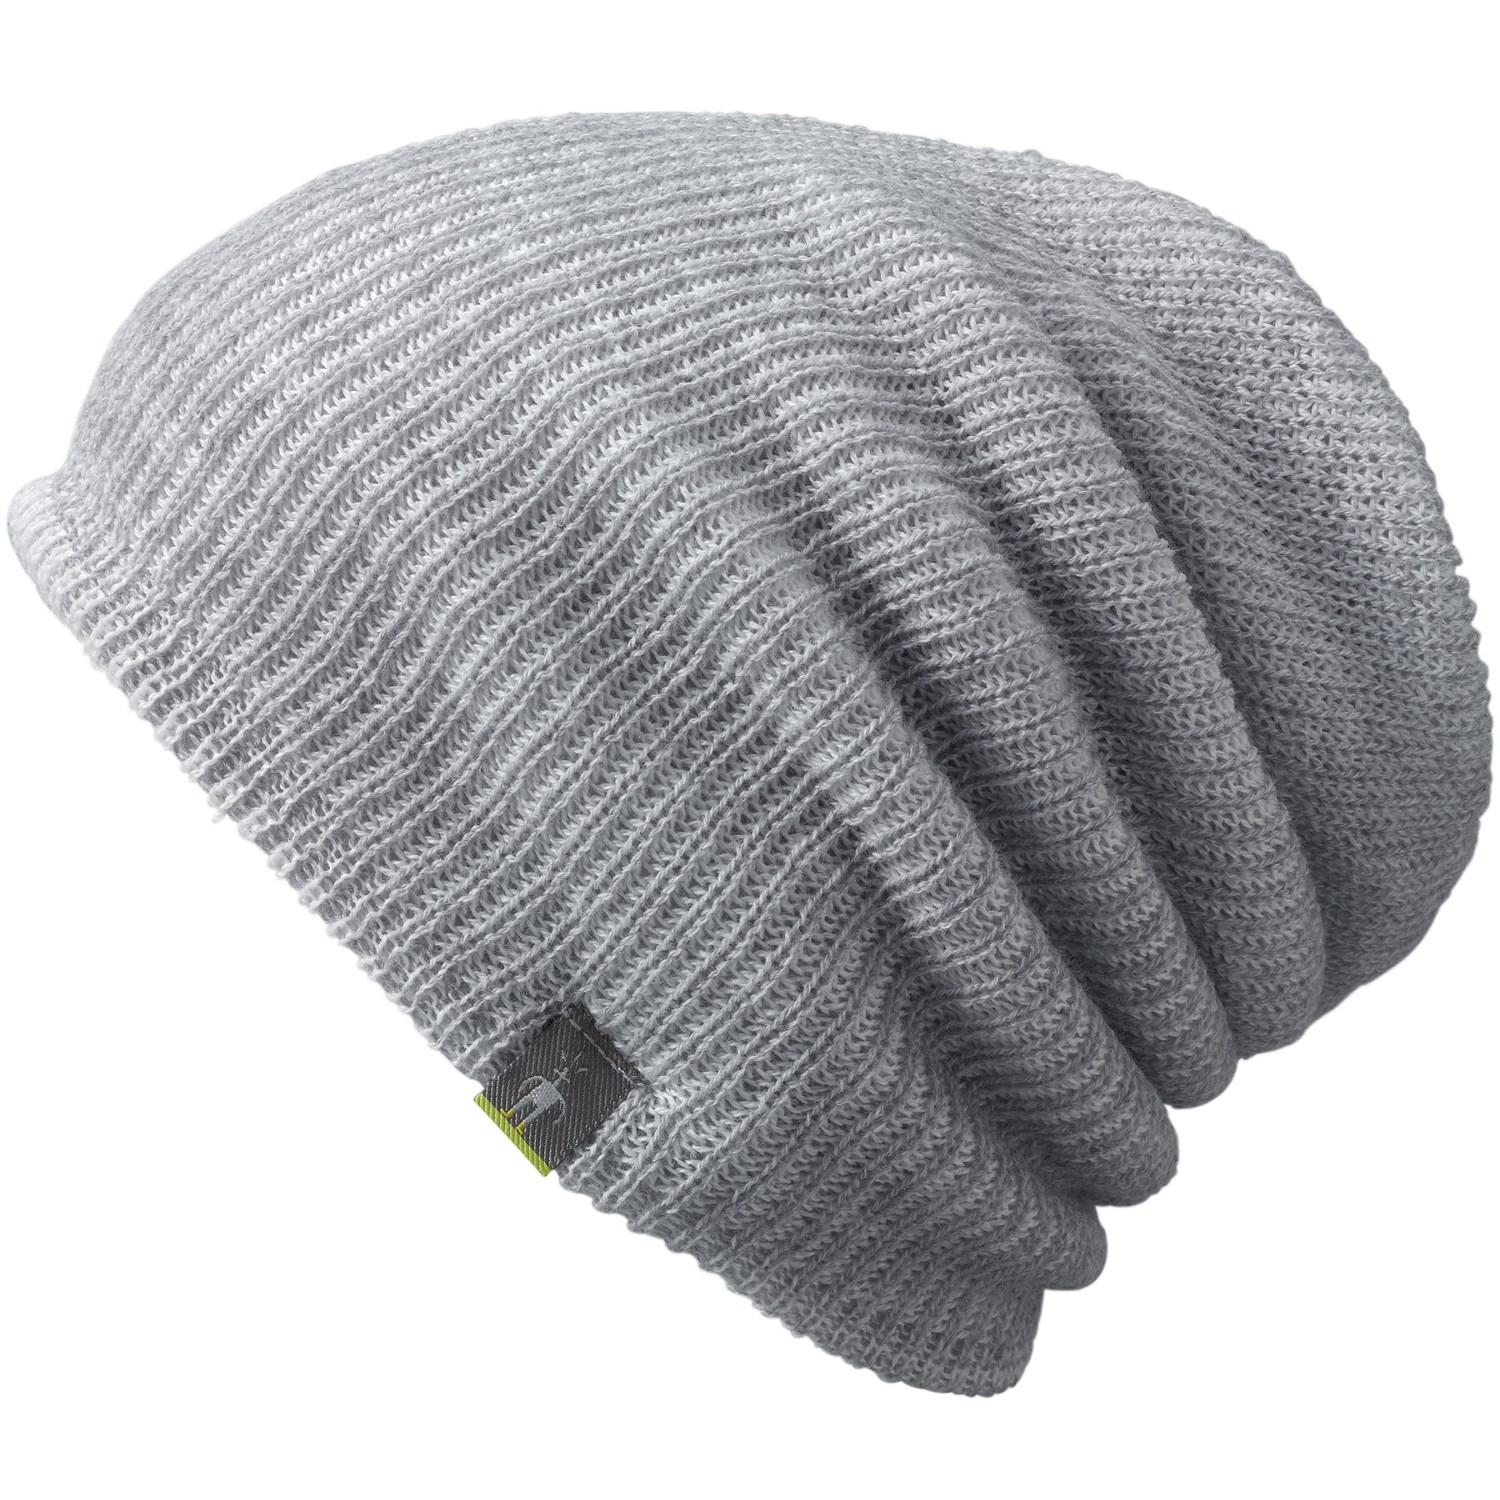 Mens Wool Hats Sale: Save Up to 60% Off! Shop hamlergoodchain.ga's huge selection of Wool Hats for Men - Over styles available. FREE Shipping & Exchanges, and a % price guarantee!